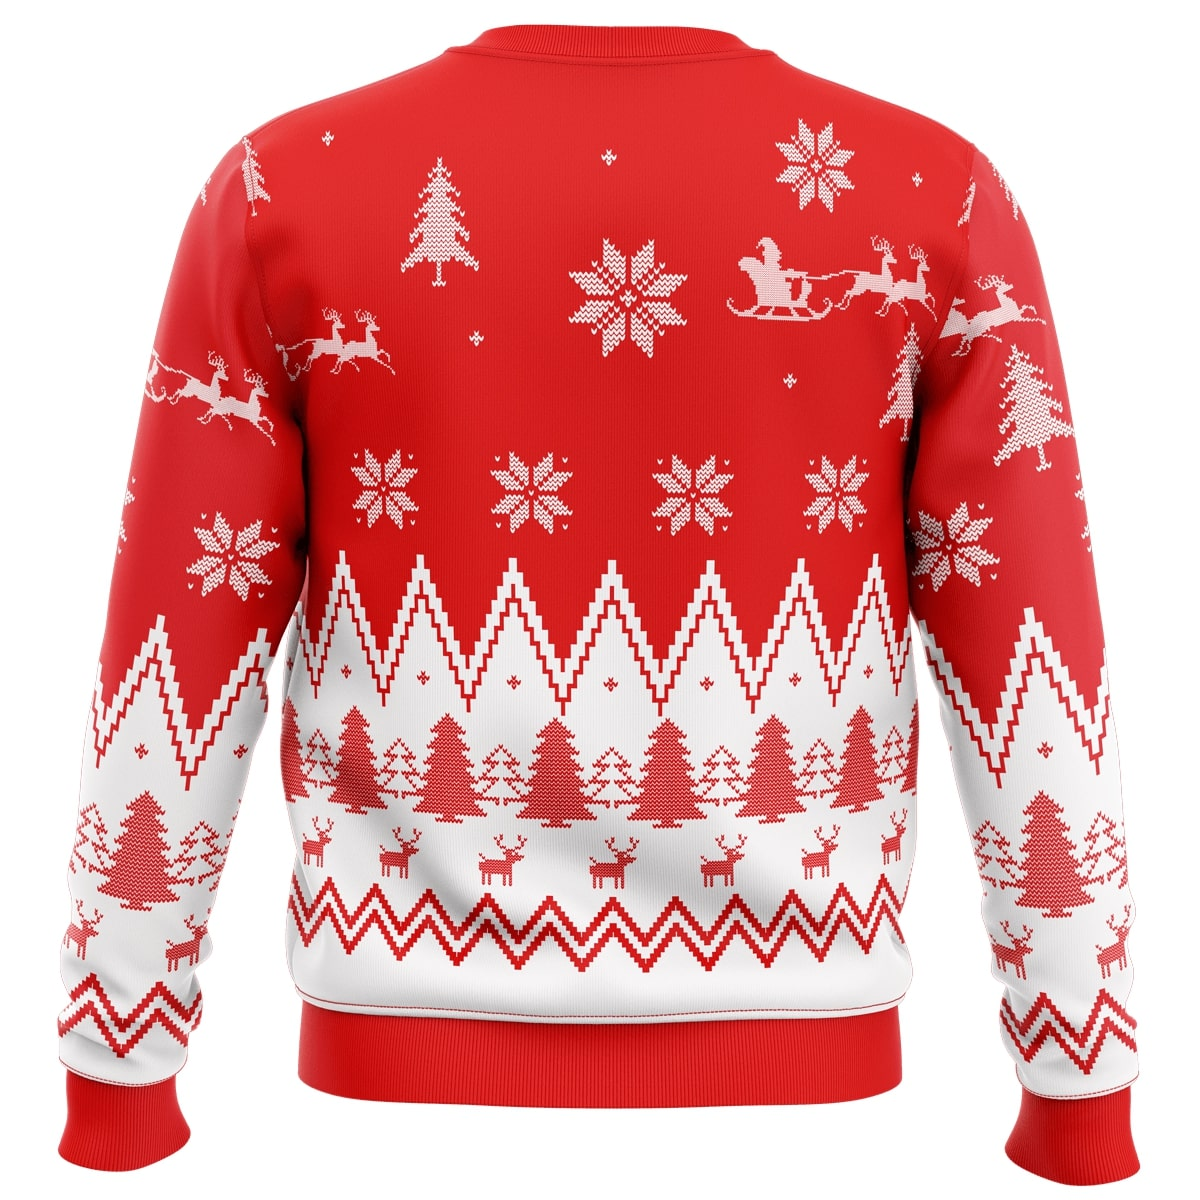 make christmas great again trump all over printed ugly christmas sweater 5